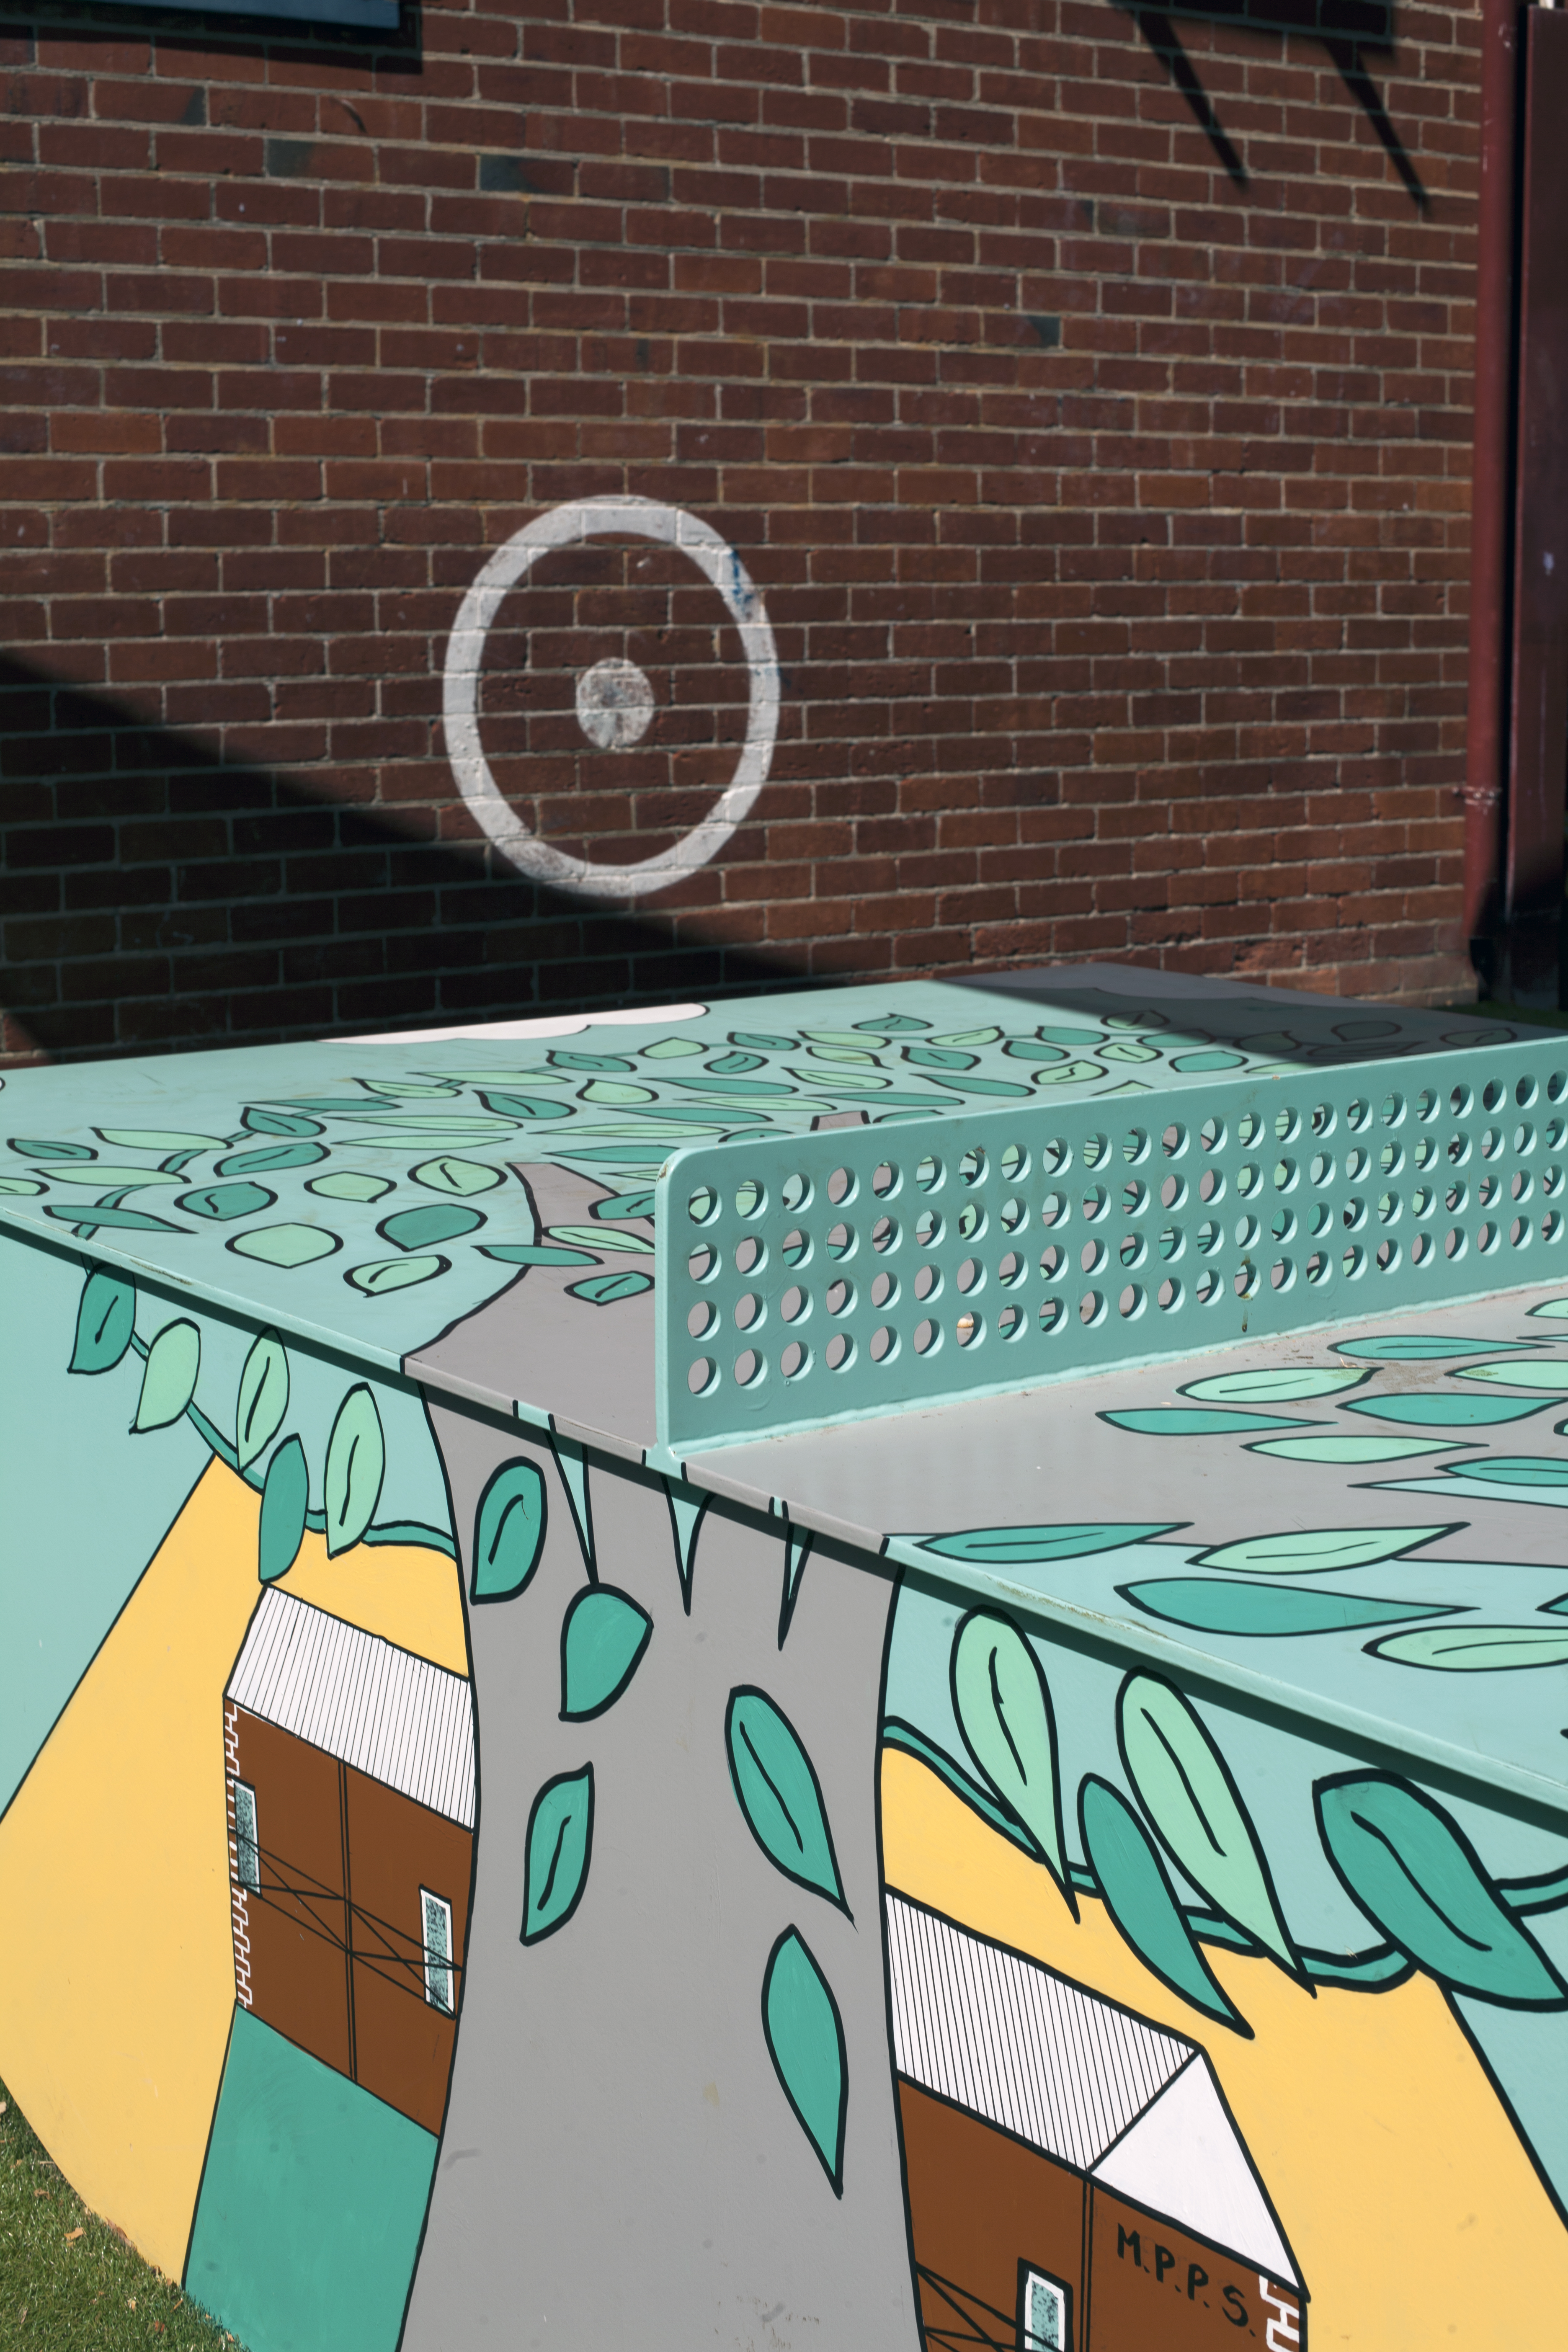 Hand painted outdoor table tennis table. adorned with students art work including trees, waves, ice creams, books, hats, surfboards.